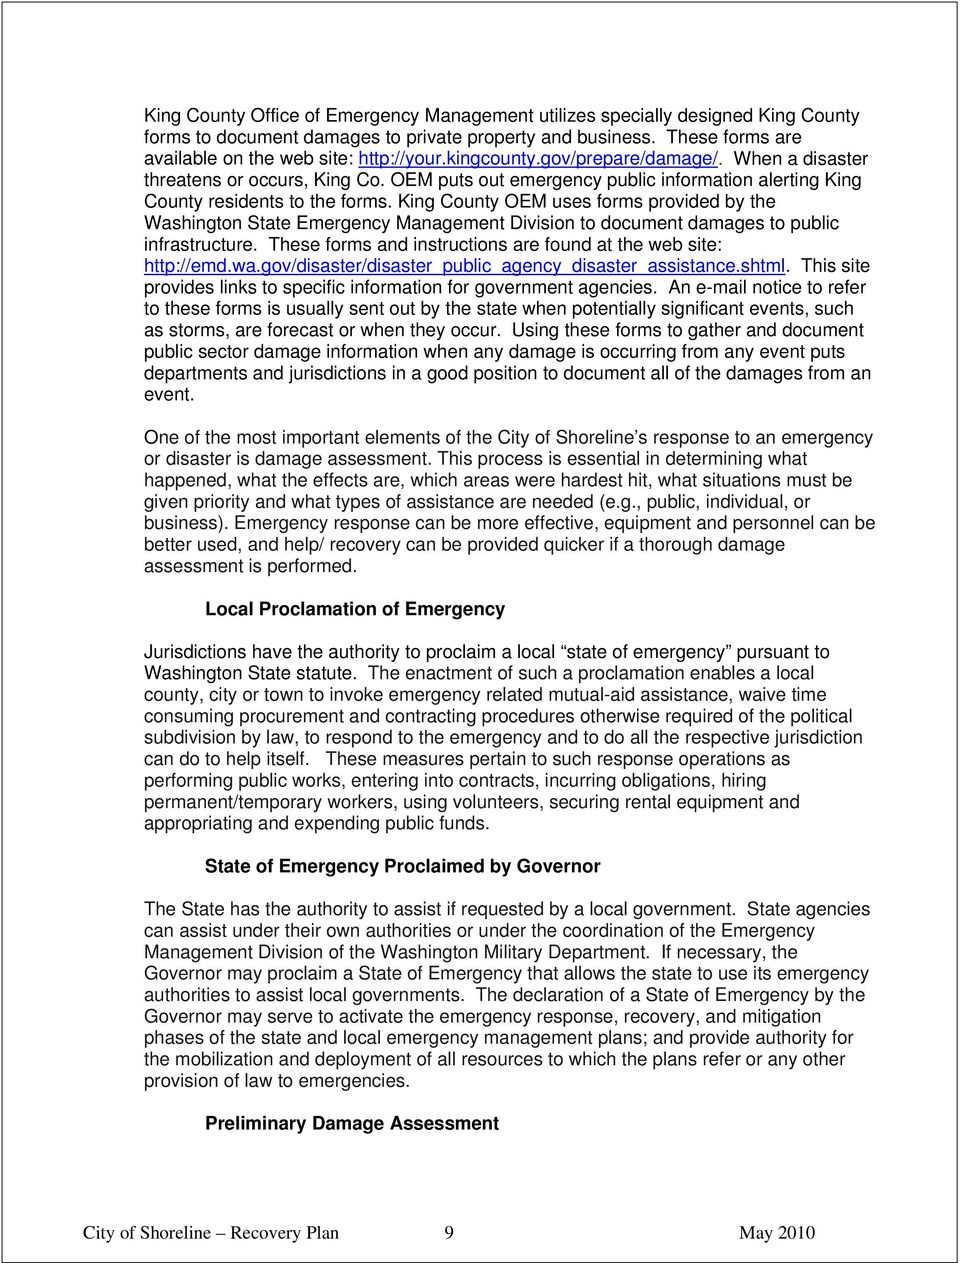 King County OEM uses forms provided by the Washington State Emergency Management Division to document damages to public infrastructure.